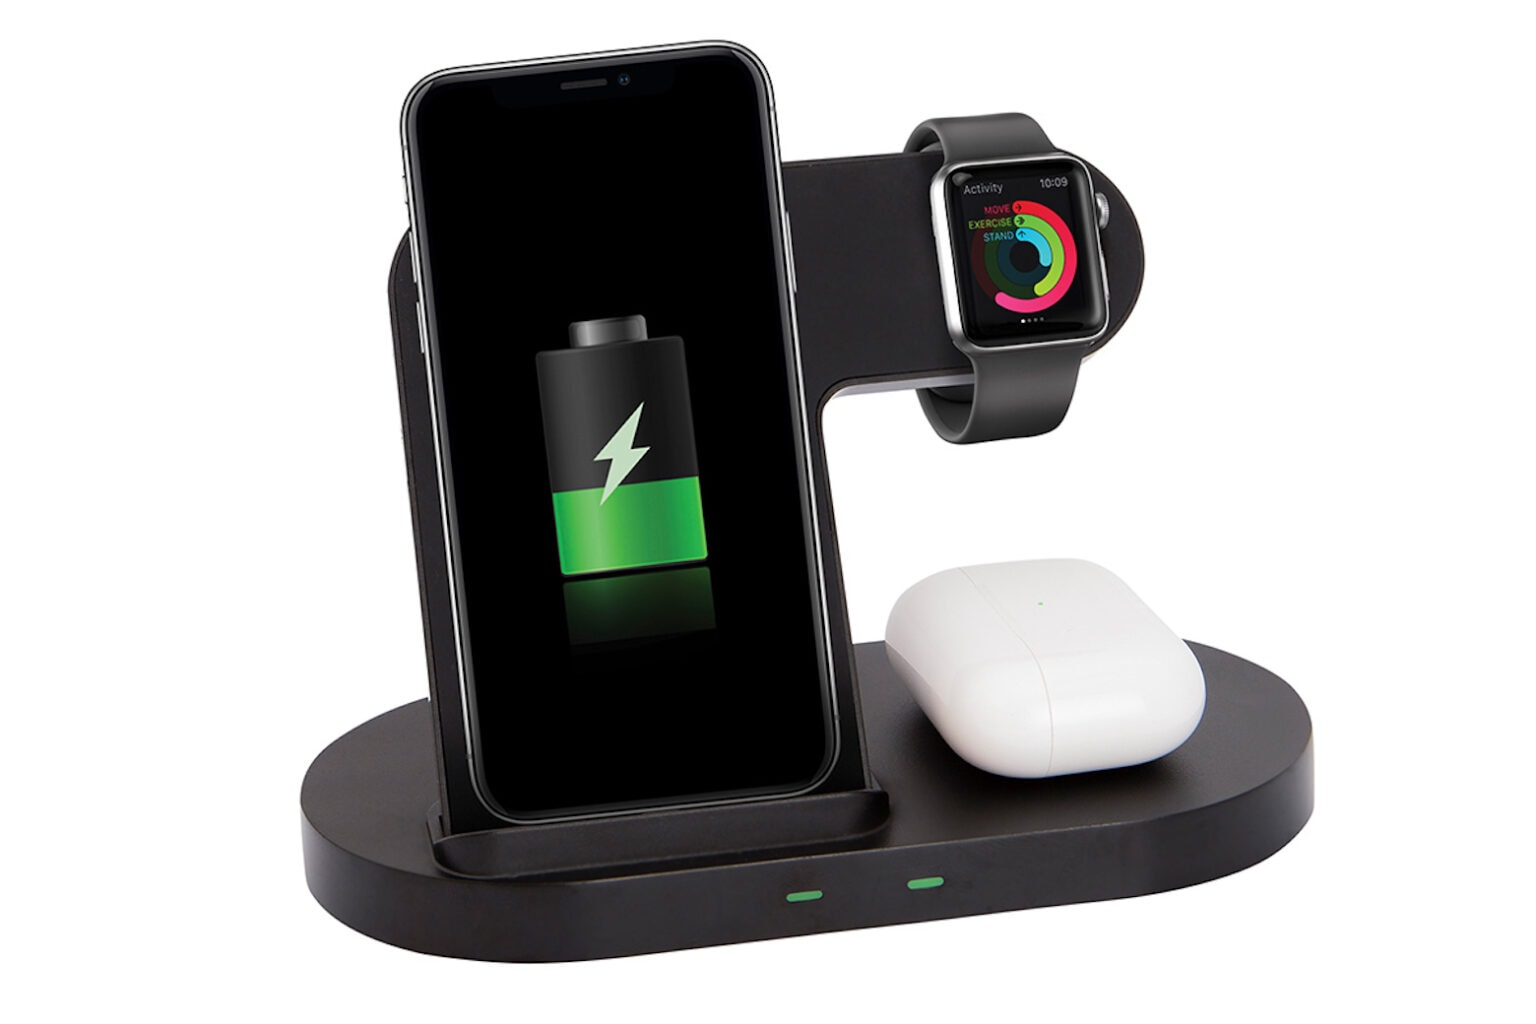 This 4-in-1 charging stand will charge up your iPhone, AirPods Apple Watch and more.